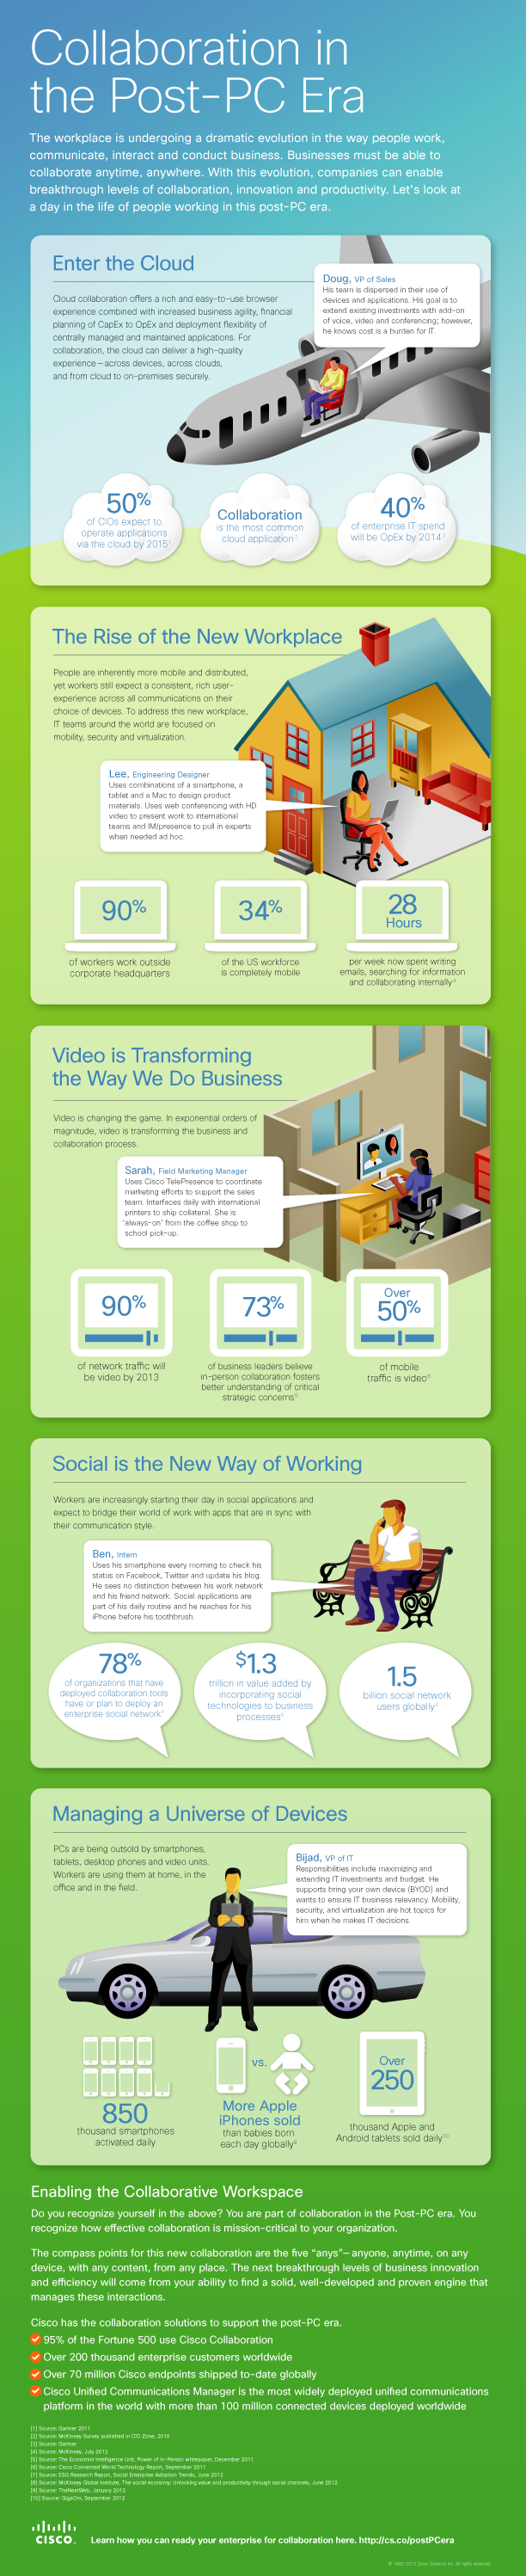 cisco-collab-infographic-R7.png